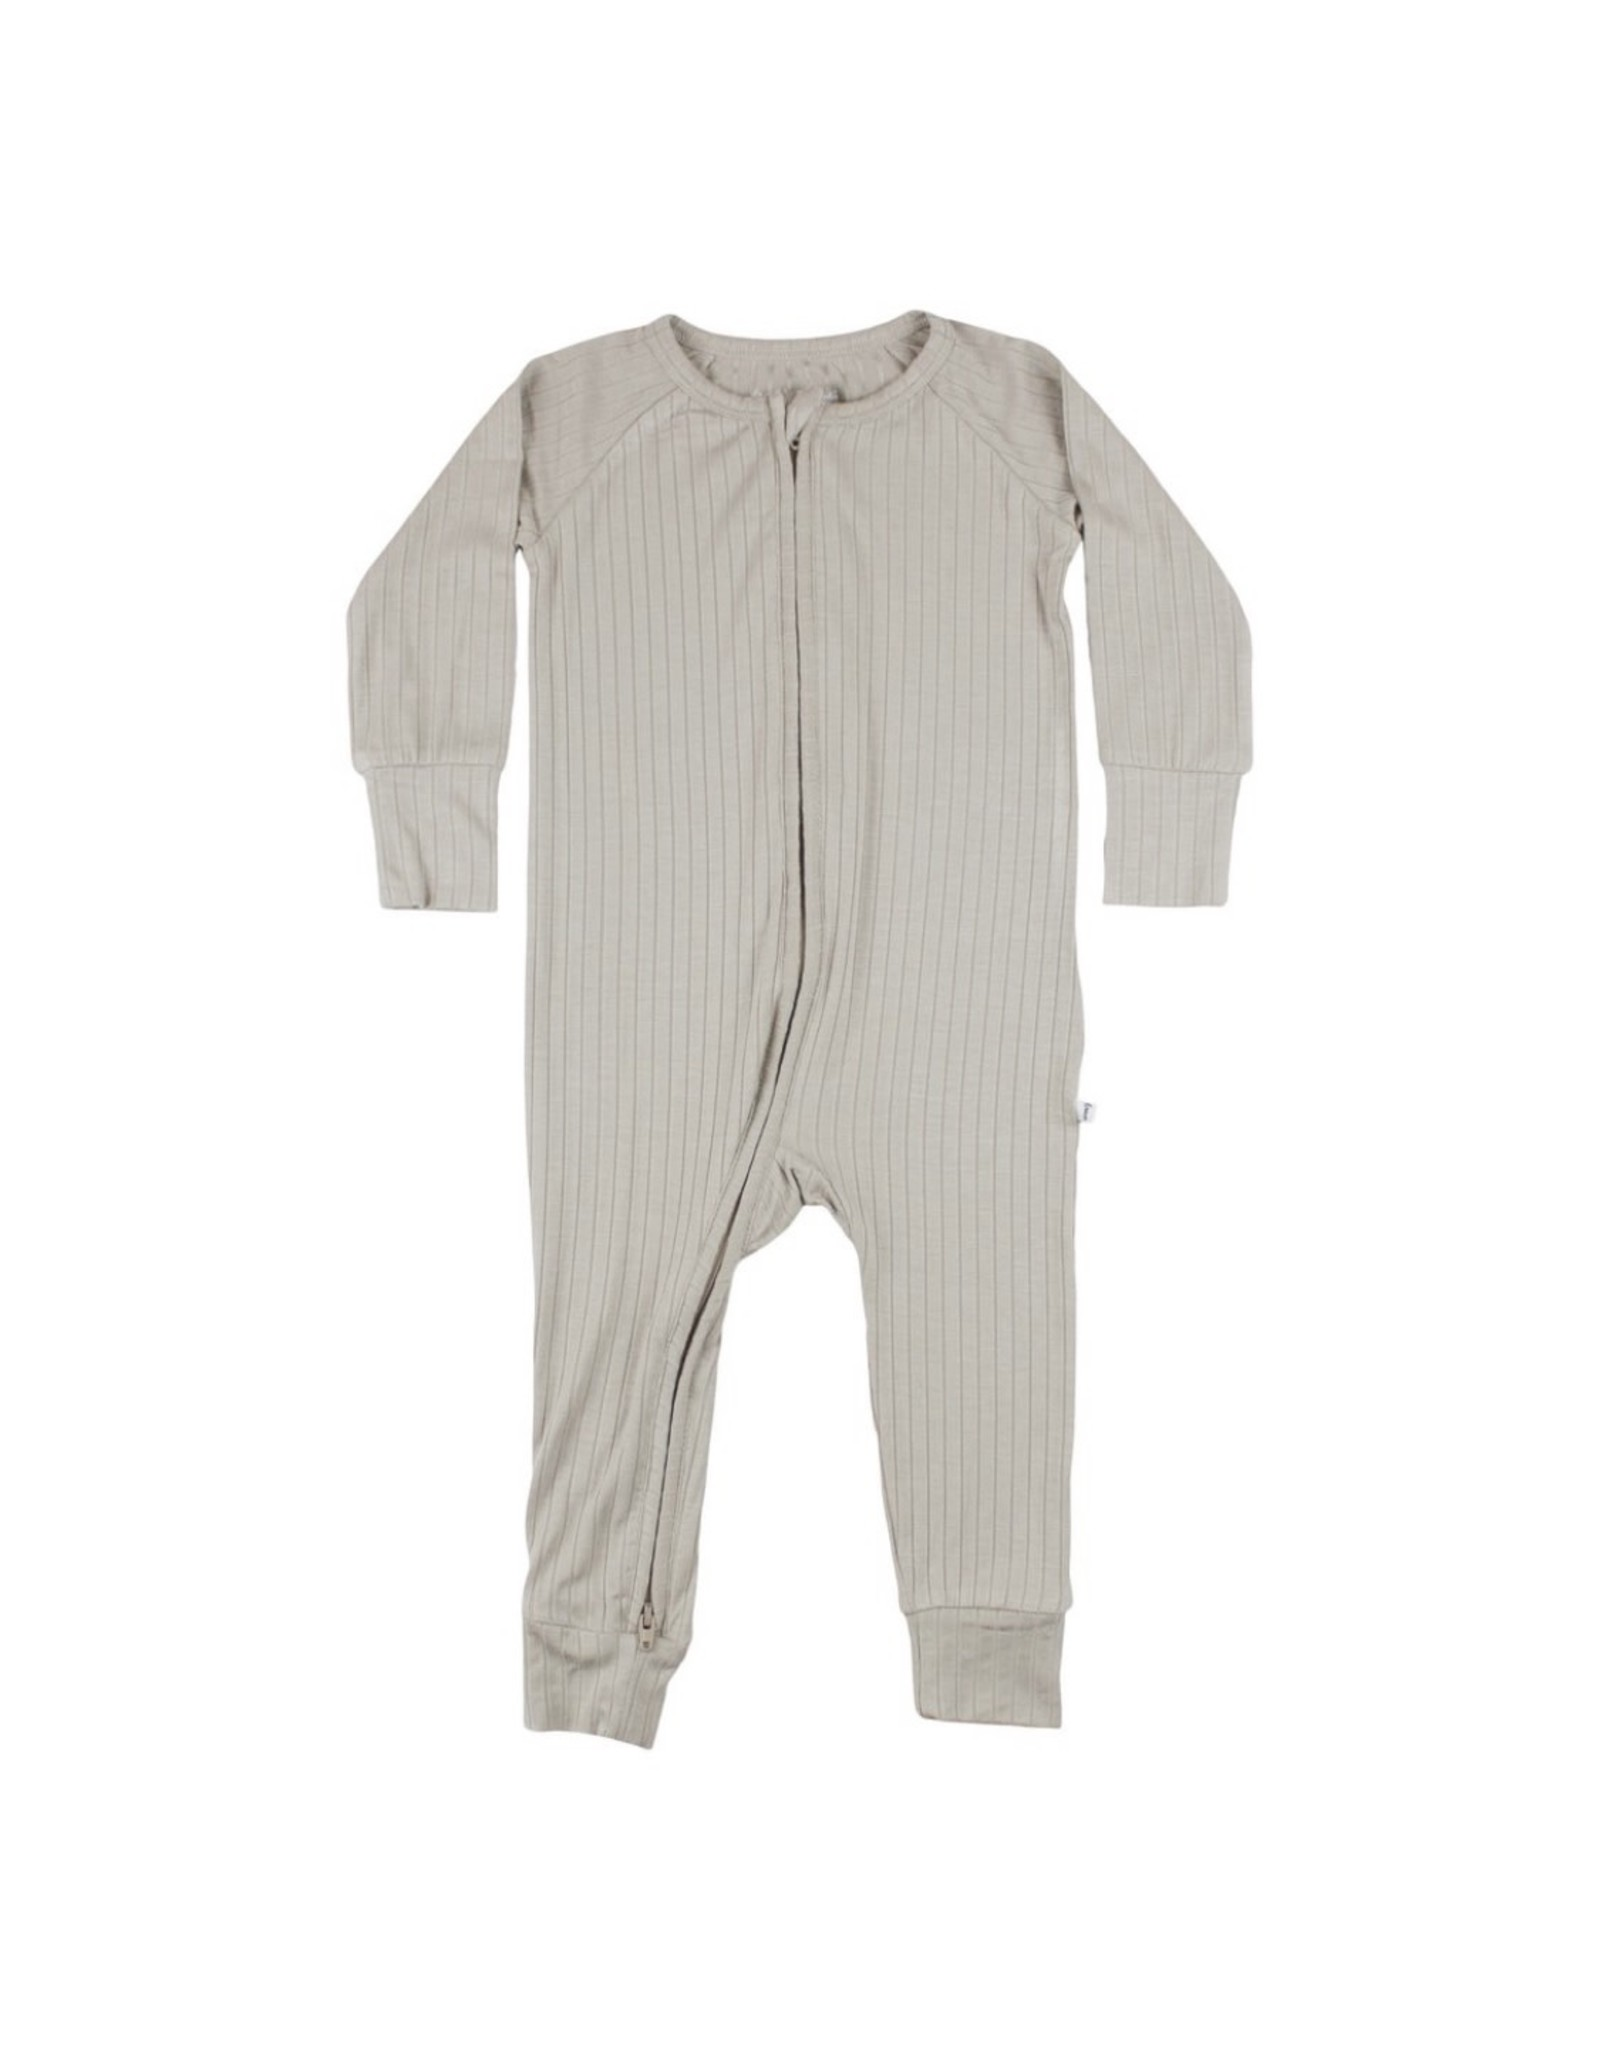 Brave Little Ones Brave Little Ones- Taupe Ribbed Zip Romper